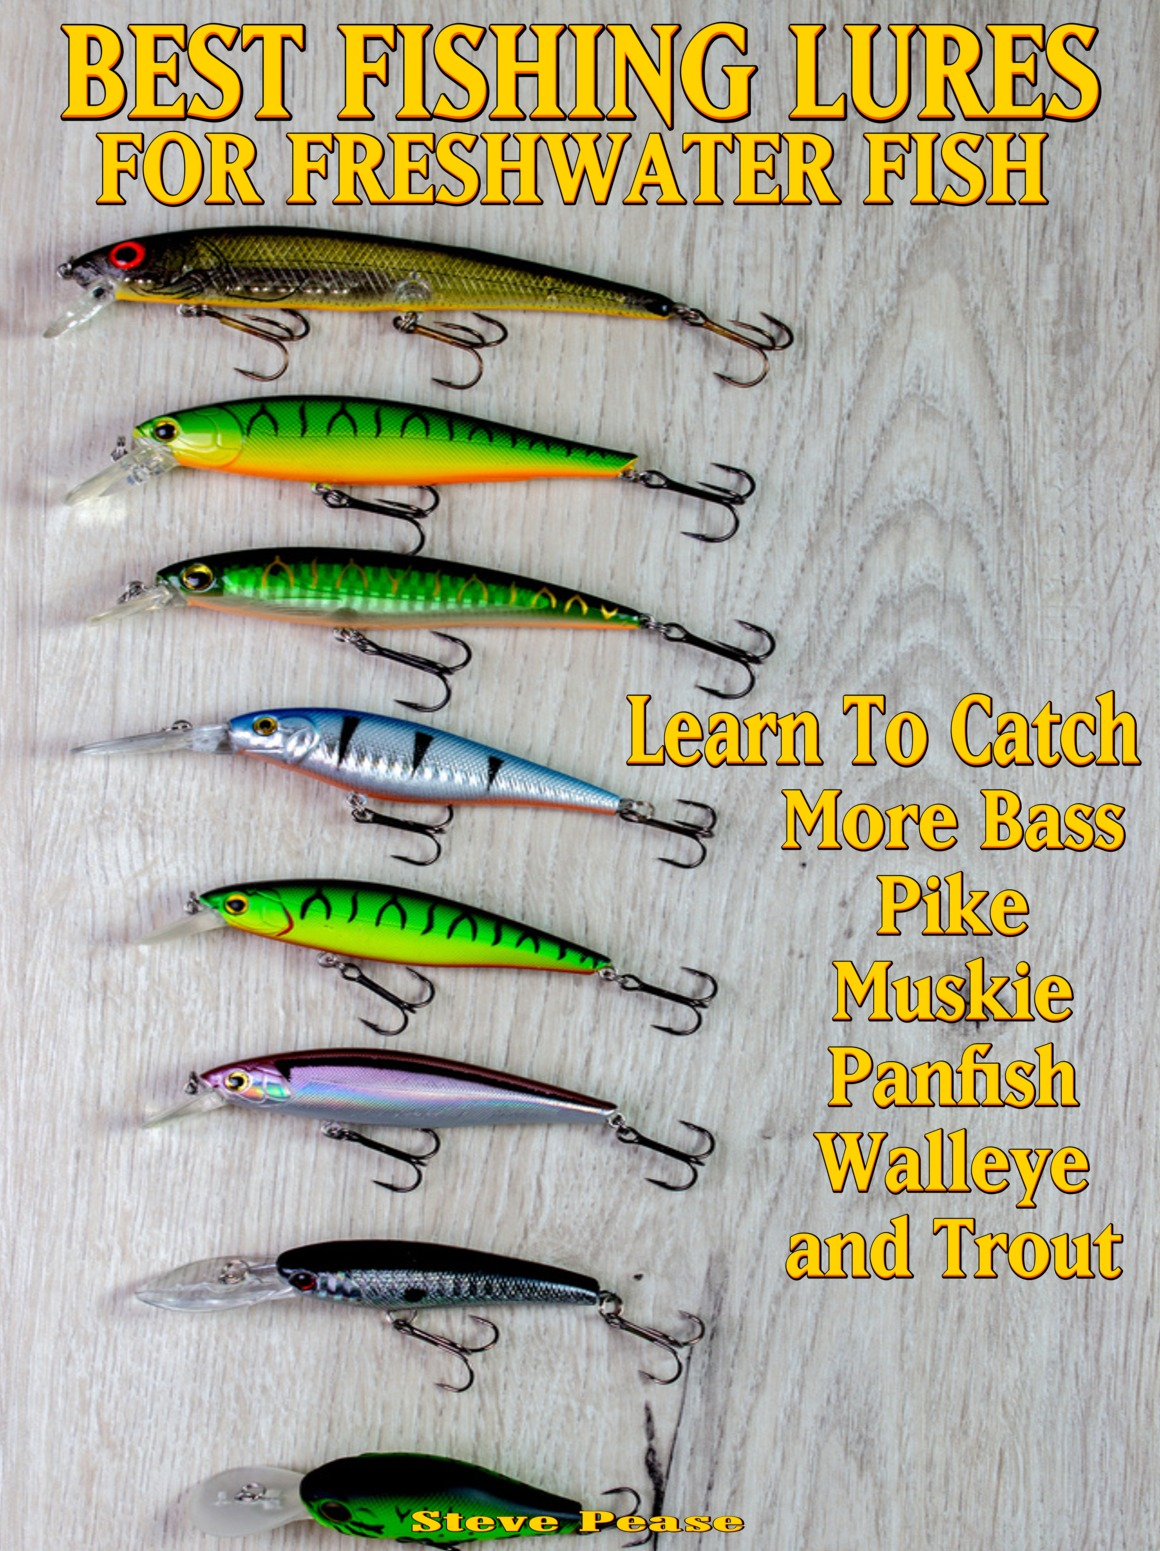 BEST LURES FOR FRESHWATER FISH